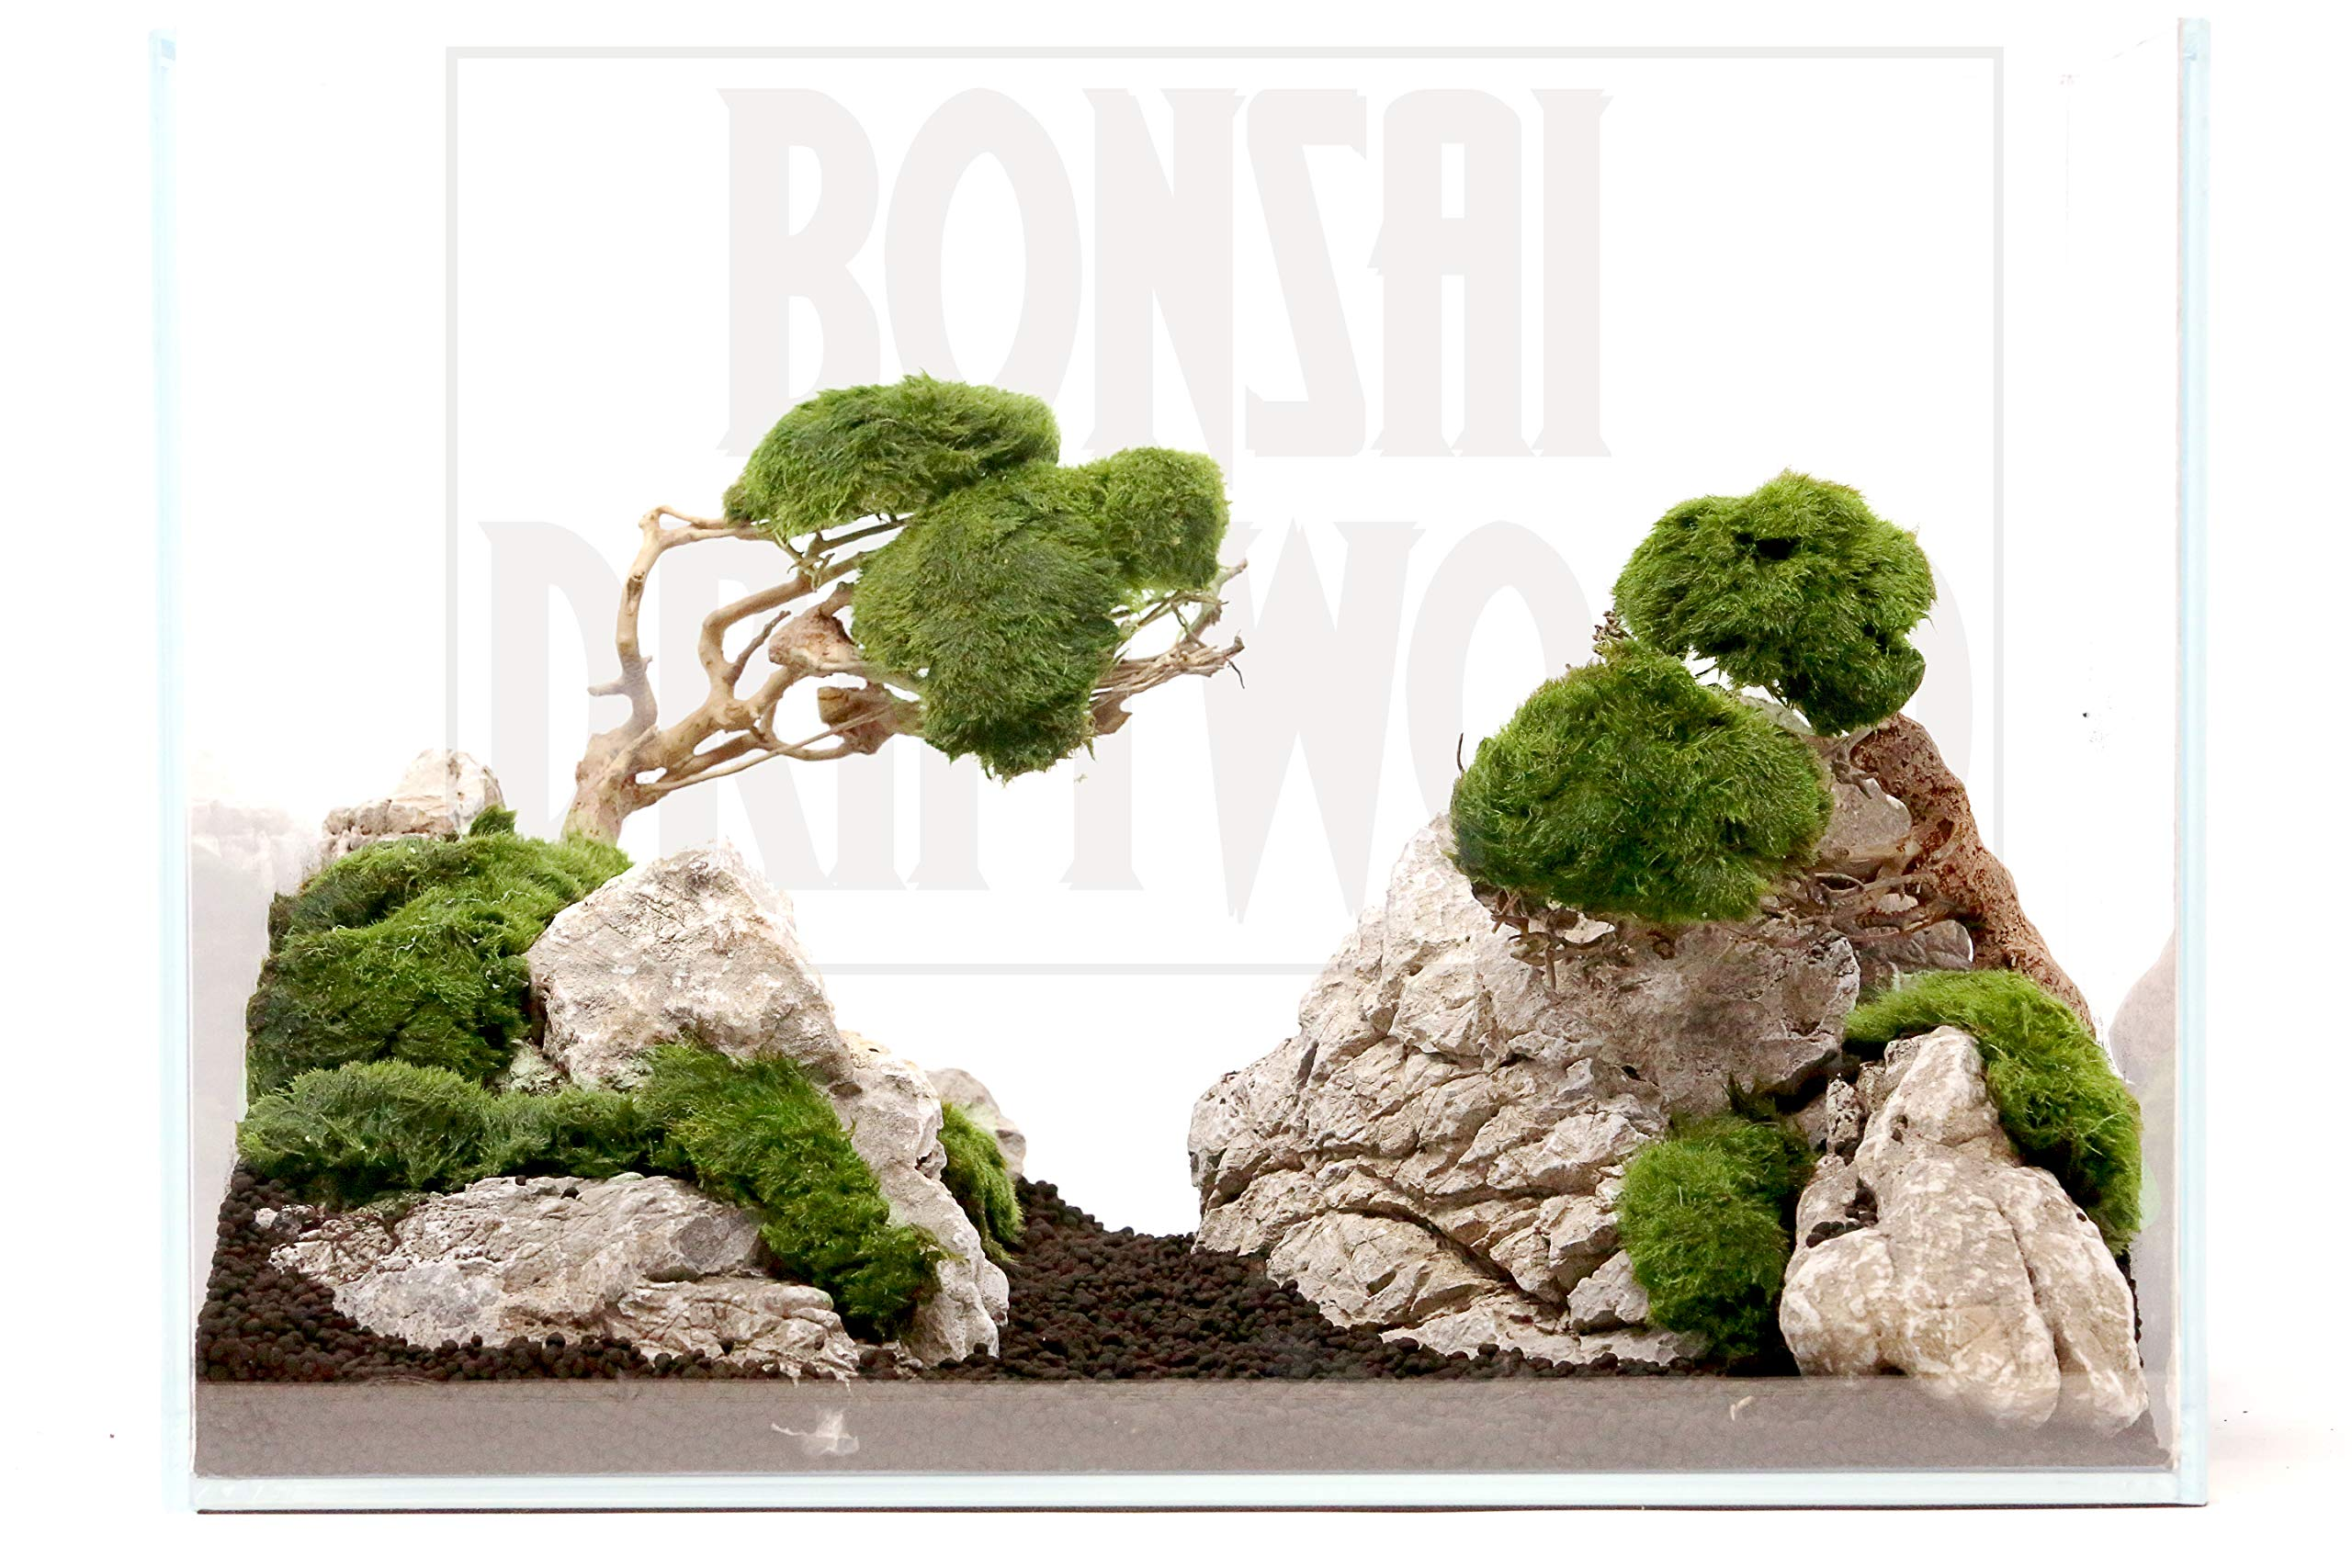 Bonsai Driftwood Aquarium Tree (5 Inch Height) Natural, Handcrafted Fish Tank Decoration | Helps Balance Water pH Levels, Stabilizes Environments | Easy to Install by Bonsai Driftwood (Image #7)